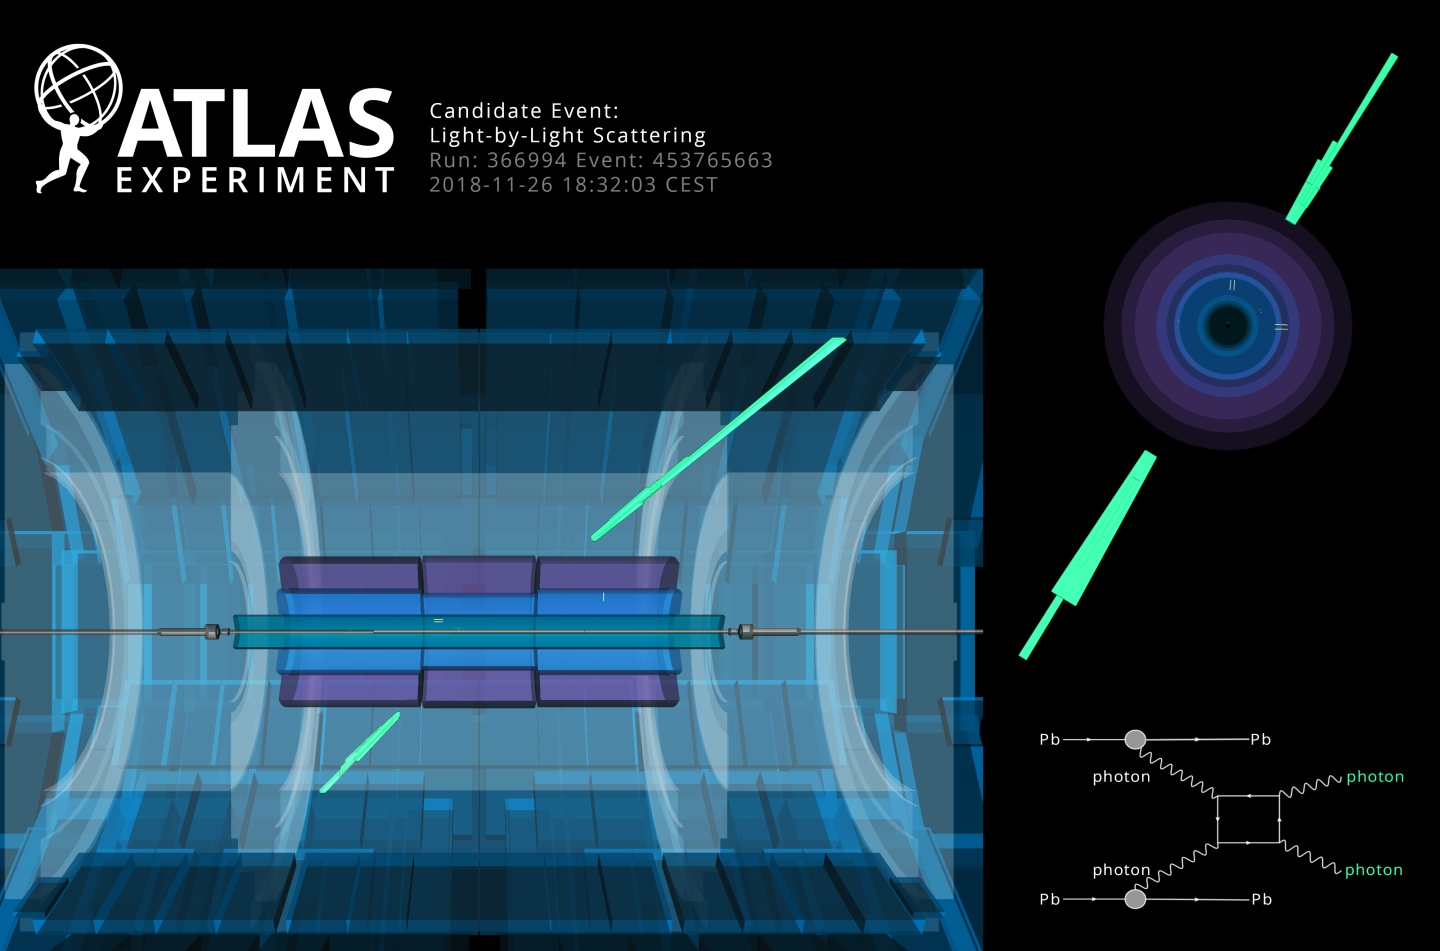 ATLAS Event Display: Light Scattering Off Light